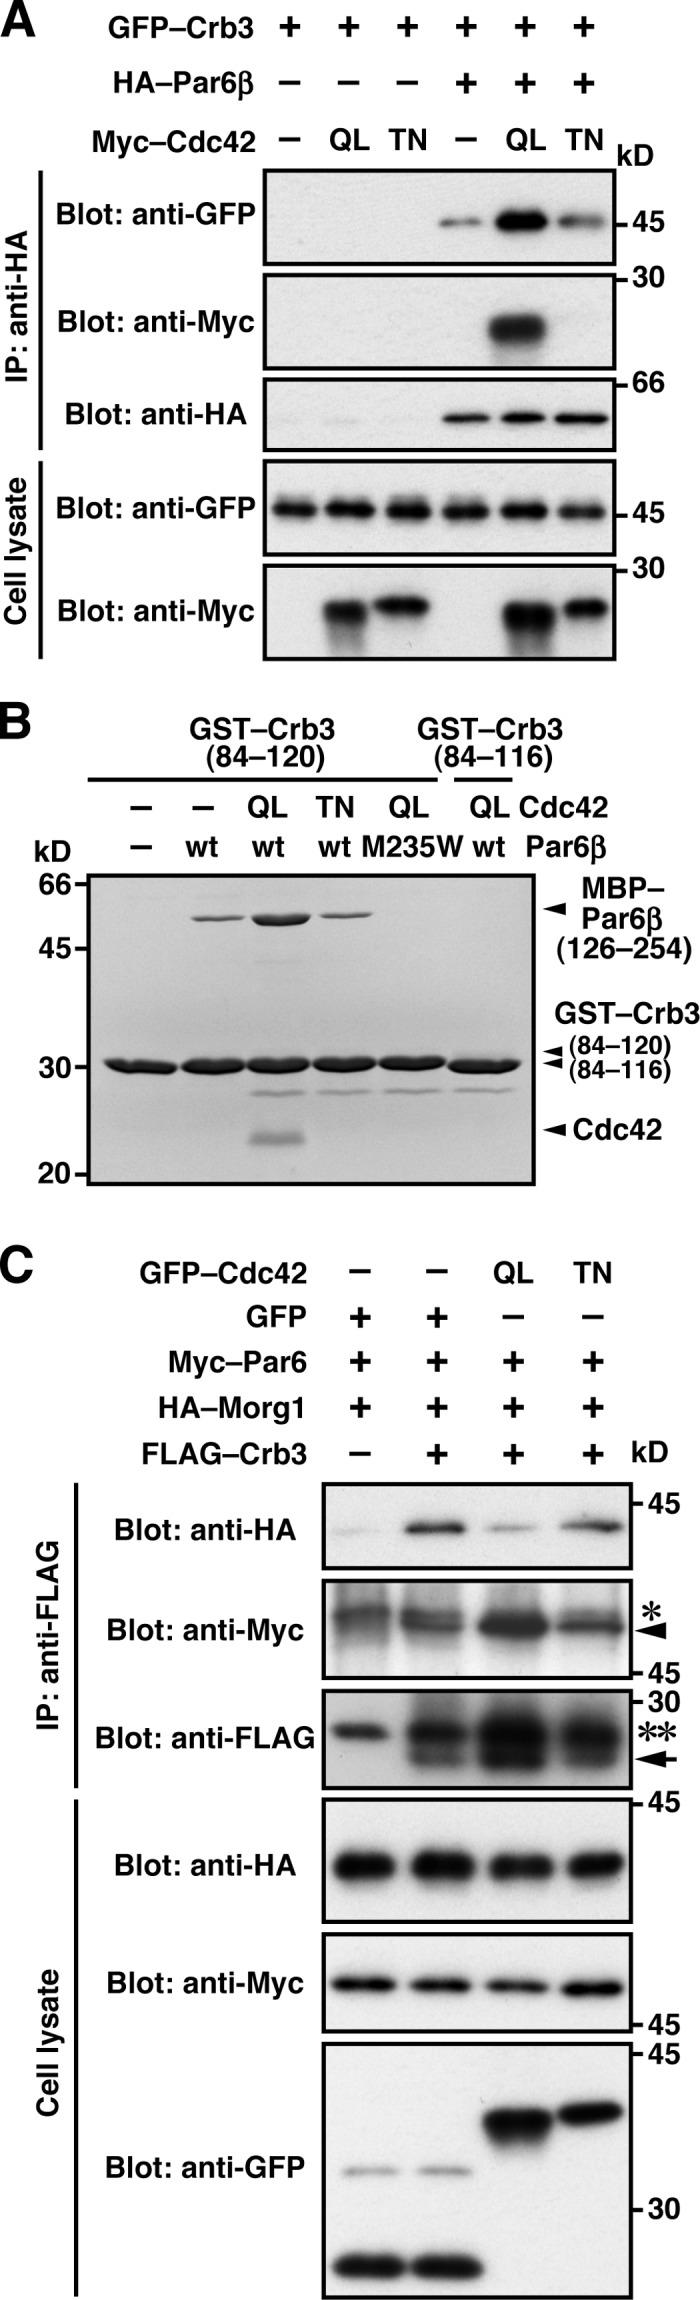 Cdc42 facilitates Par6 binding to Crb3. (A and C) Proteins in the lysate of COS-7 cells expressing indicated proteins (Cell lysate) were immunoprecipitated (IP) and then analyzed by immunoblot (Blot) with the indicated antibodies. In C, the arrow and arrowhead indicate the positions of FLAG–Crb3 and Myc–Par6, respectively; Single and double asterisks denote the heavy and light chains of IgG, respectively. (B) GST–Crb3-(84–120 or 84–116) was incubated with MBP–Par6β-(126–254) in the presence of Cdc42 (Q61L or T17N), and pulled down with glutathione-Sepharose 4B beads, followed by SDS-PAGE analysis with CBB staining.